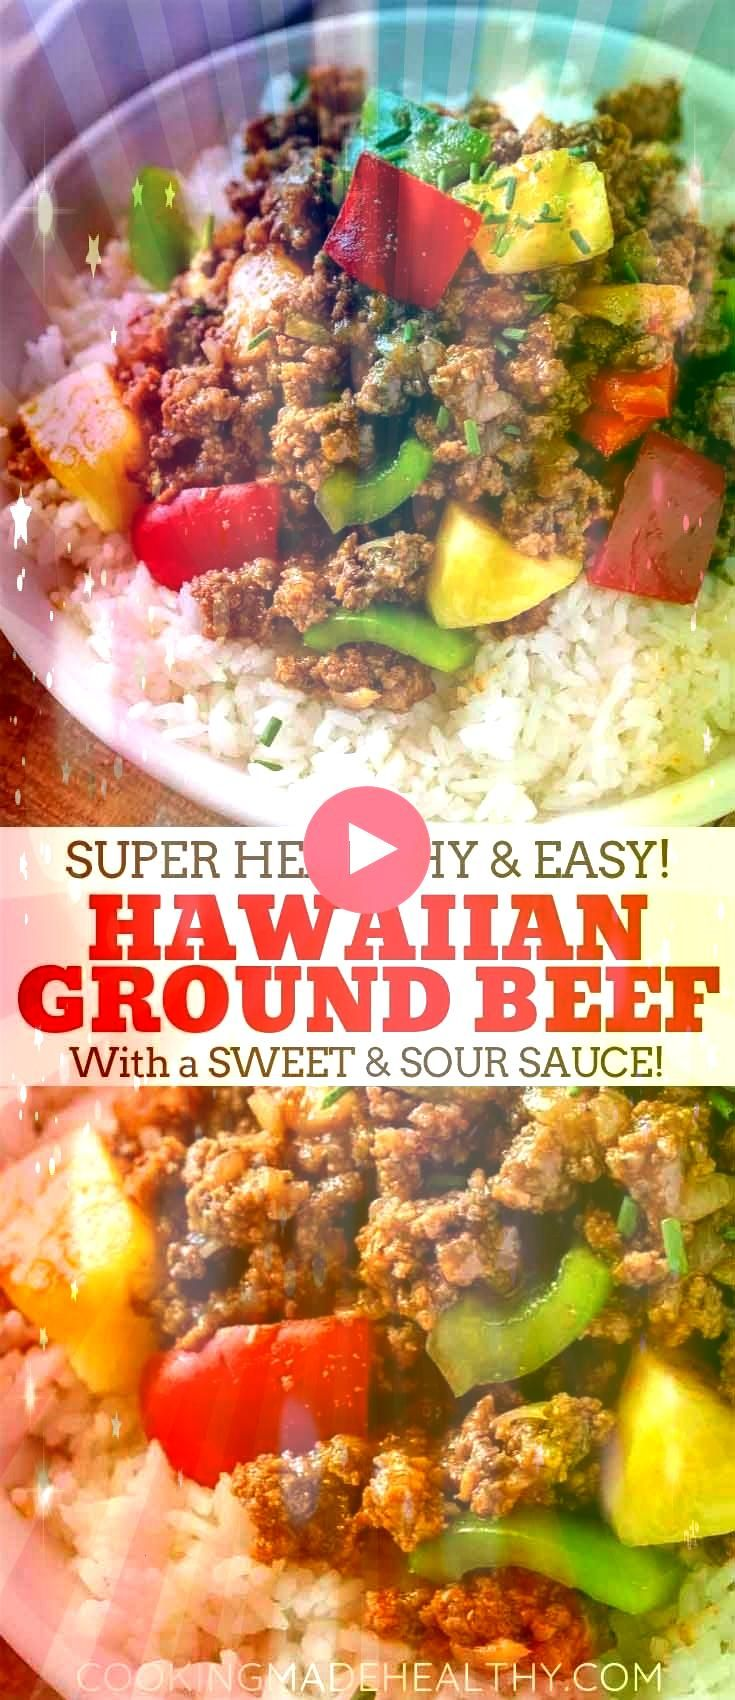 Hawaiian Beef made with lean ground beef bell peppers onion and pineapple in a sweet and savory sauce made in under 30 minutesGround Hawaiian Beef made with lean ground b...